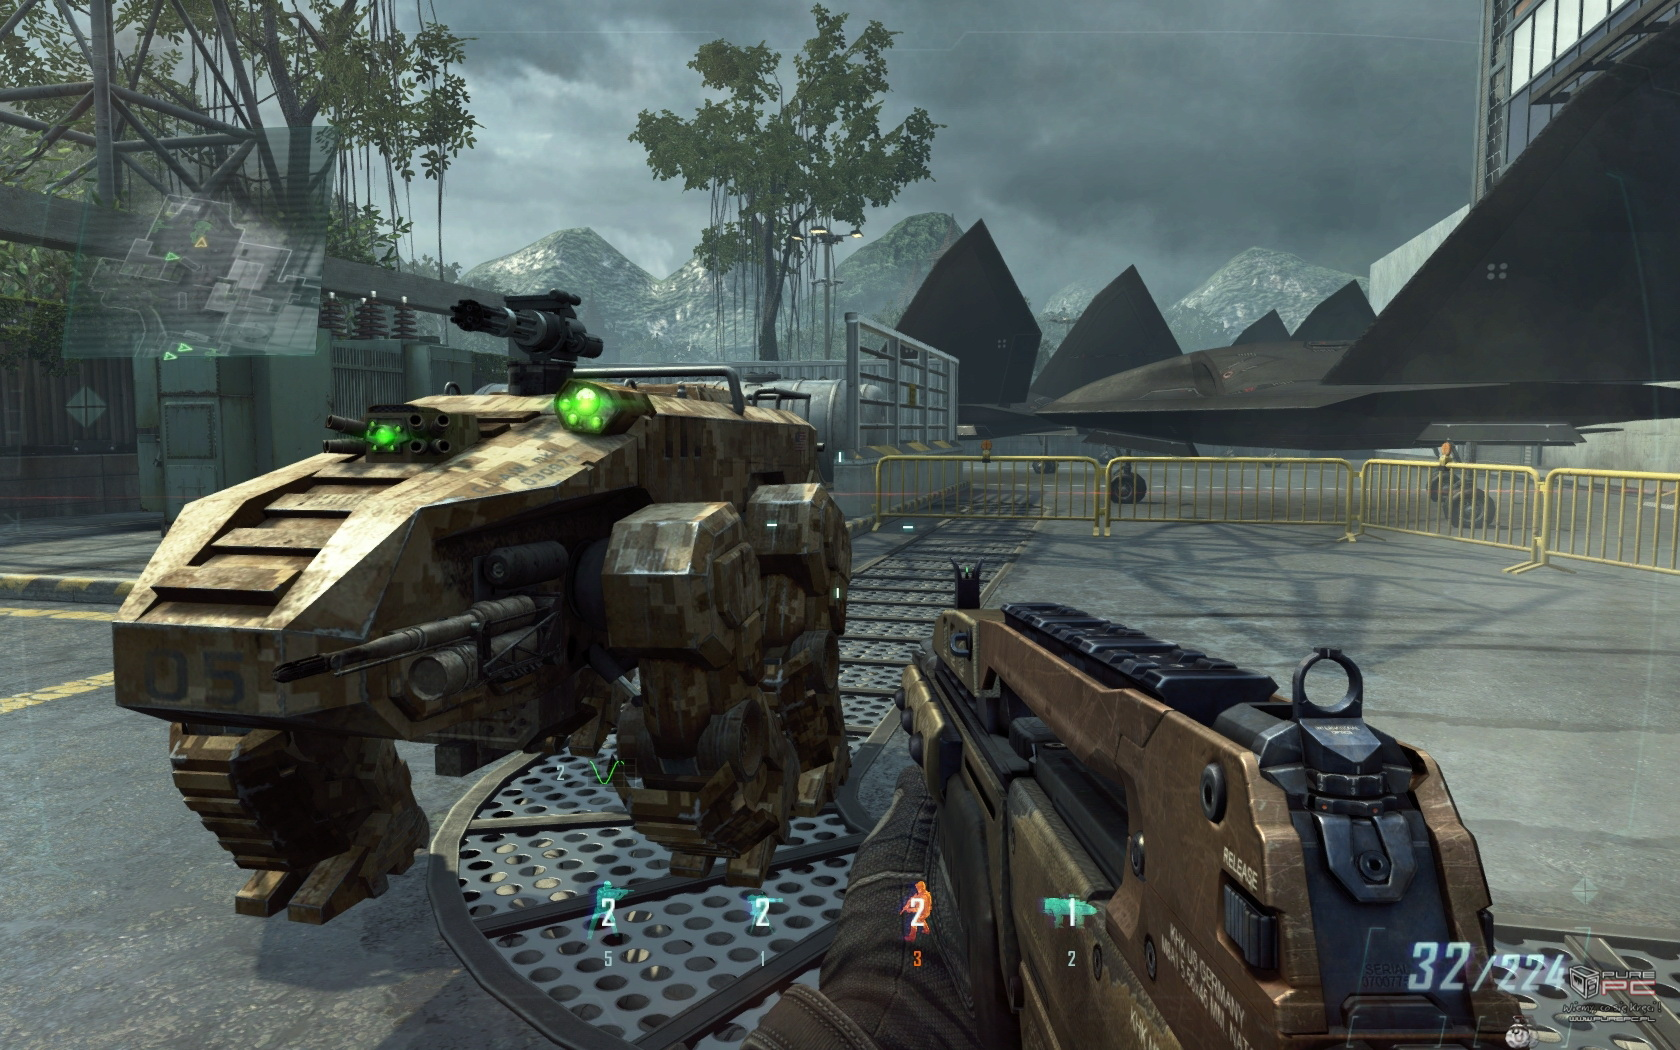 informative essay black ops 2 halo The halo series began with halo: combat evolved on the xbox in 2001 (eventually making its way to pc in 2003) the franchise focuses on the war between humans and an alliance of aliens known as the covenan.